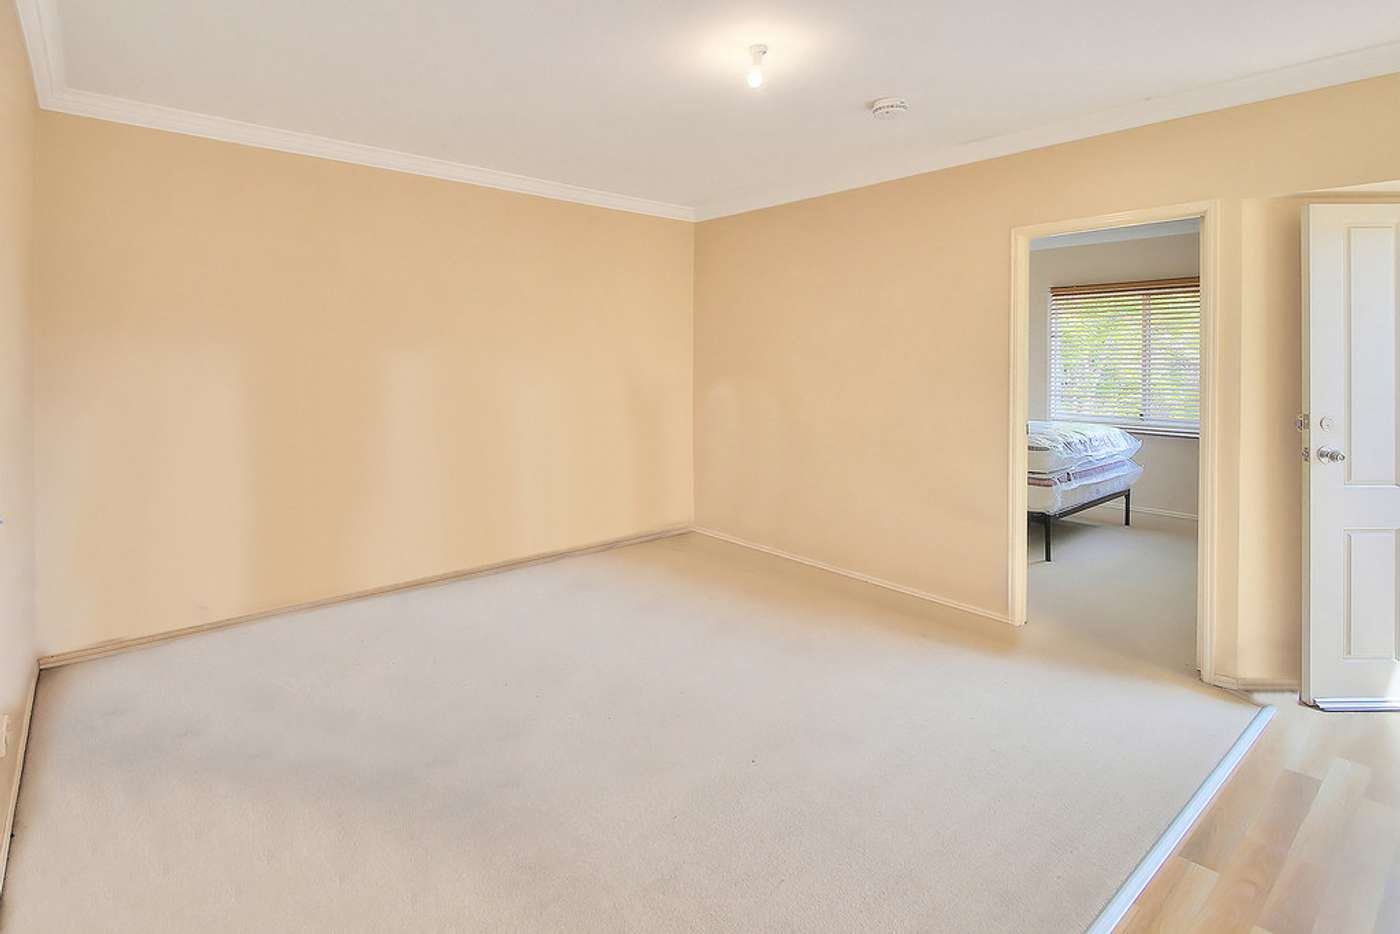 Fifth view of Homely house listing, 12 Hammersmith Street, Coopers Plains QLD 4108